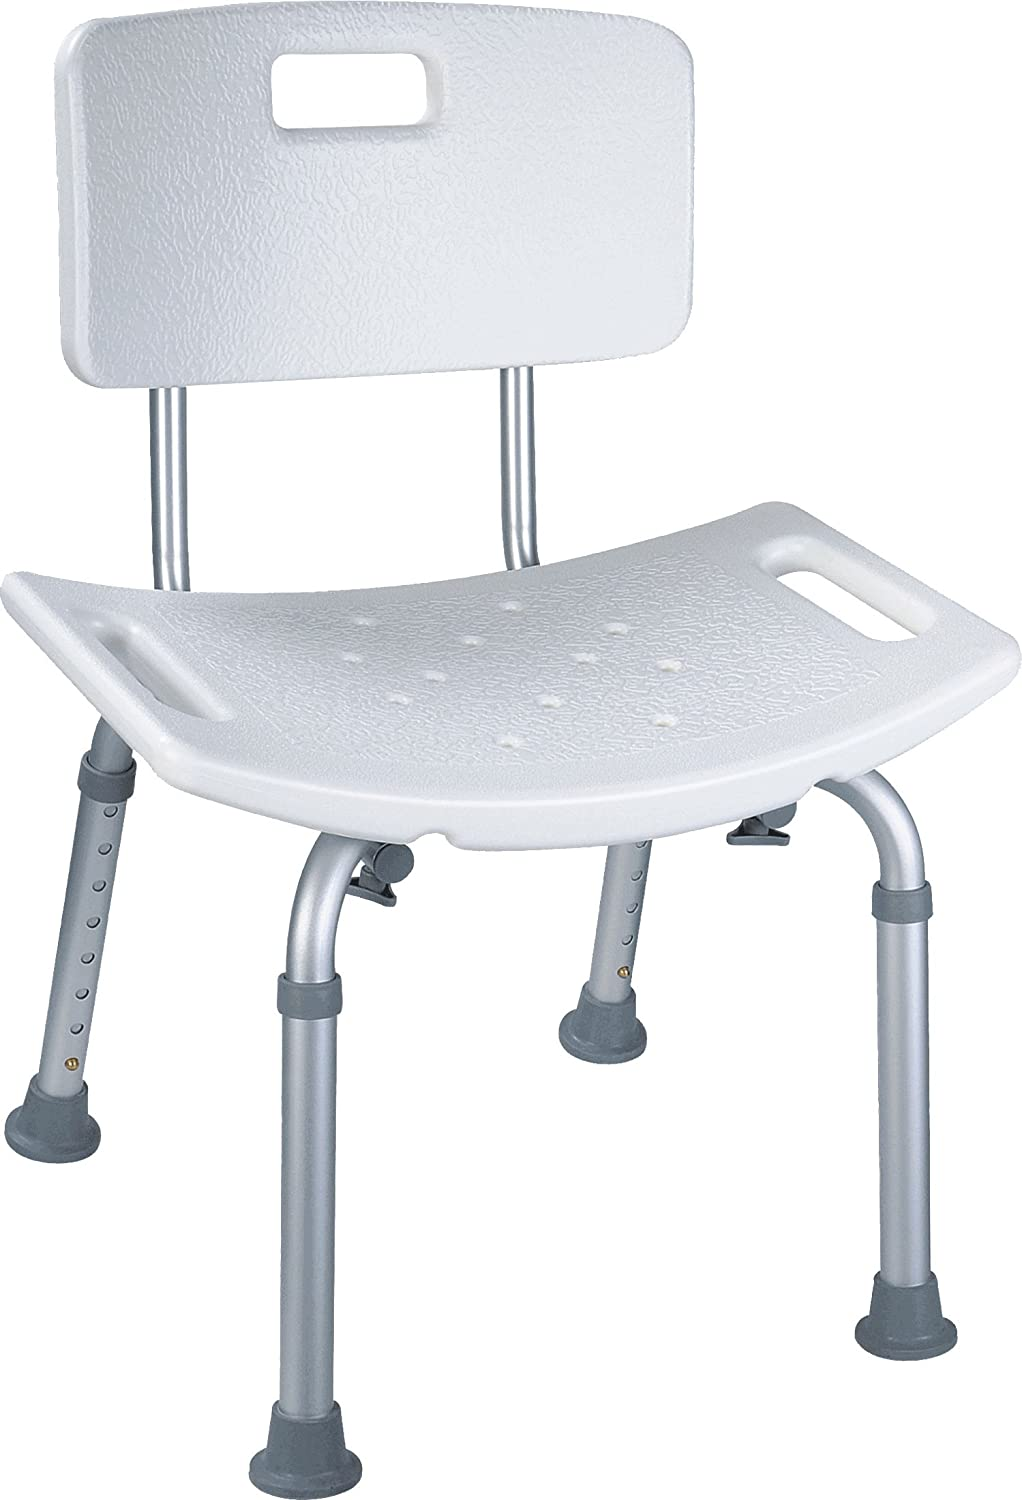 ZCHSBH02 - Shower Chair with Back